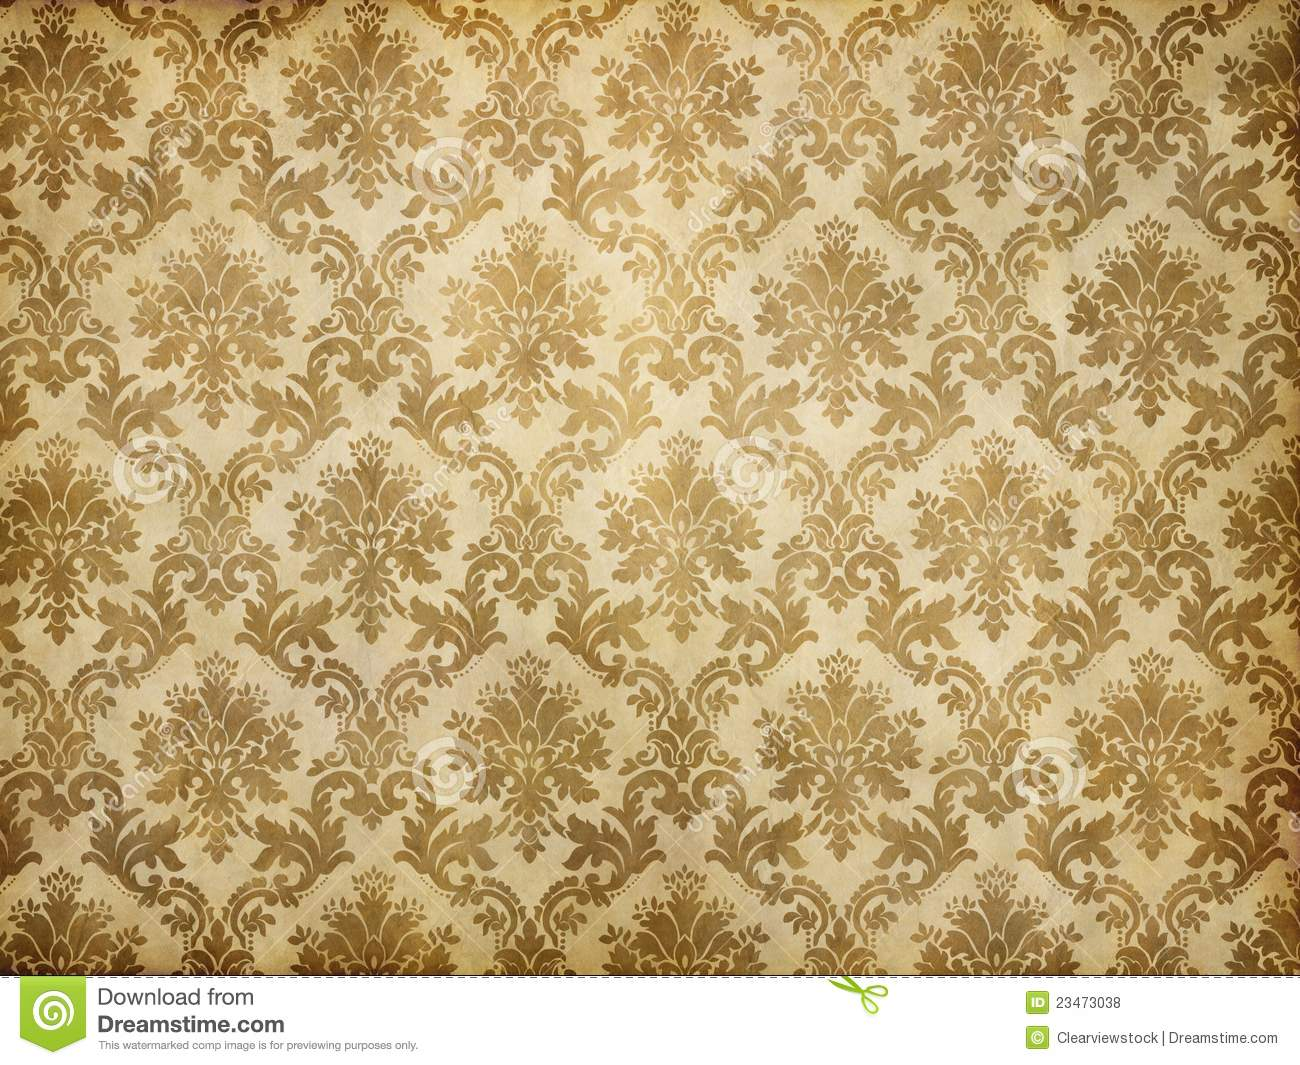 Vintage Damask Wallpaper Royalty Free Stock Photos - Image: 23473038